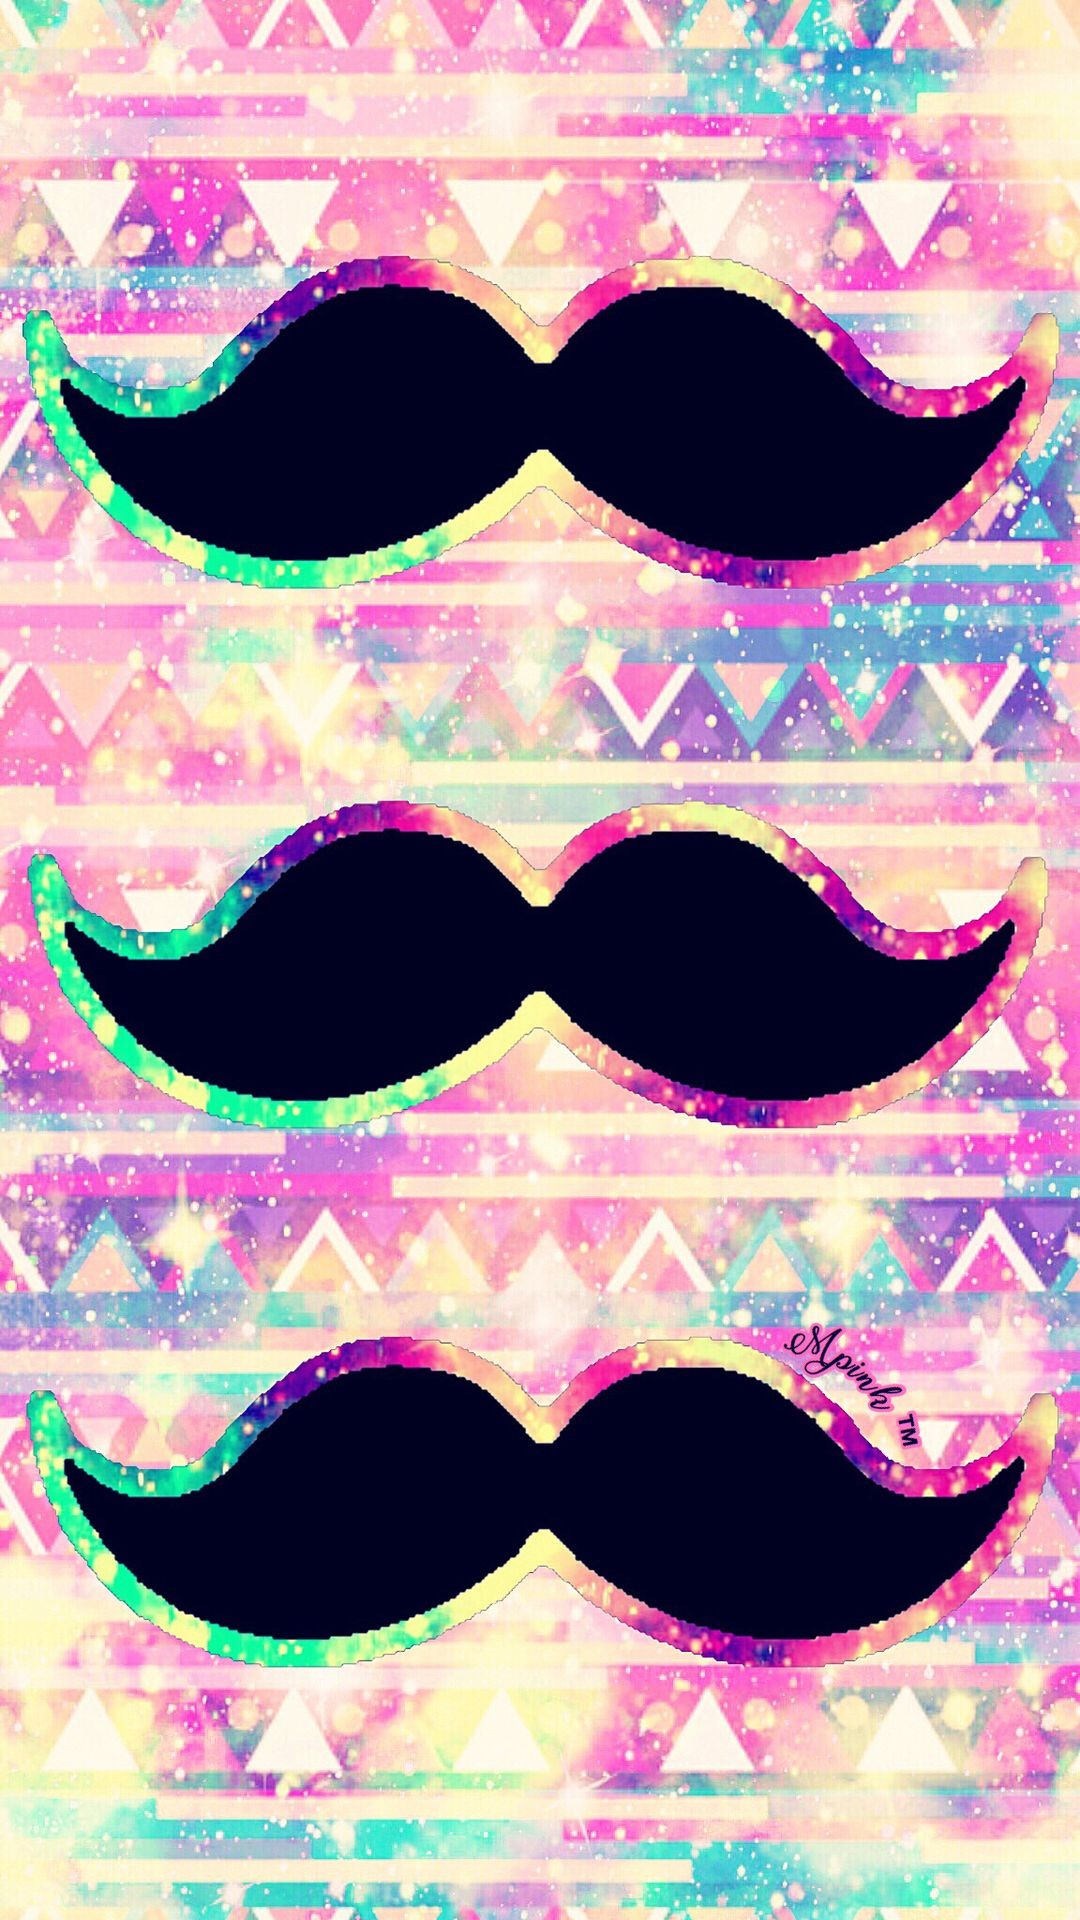 1080x1920 Triple Mustache Galaxy Wallpaper #androidwallpaper #iphonewallpaper # wallpaper #galaxy #sparkle #glitter #lockscreen #pretty #pink #cute #girly # mustache ...